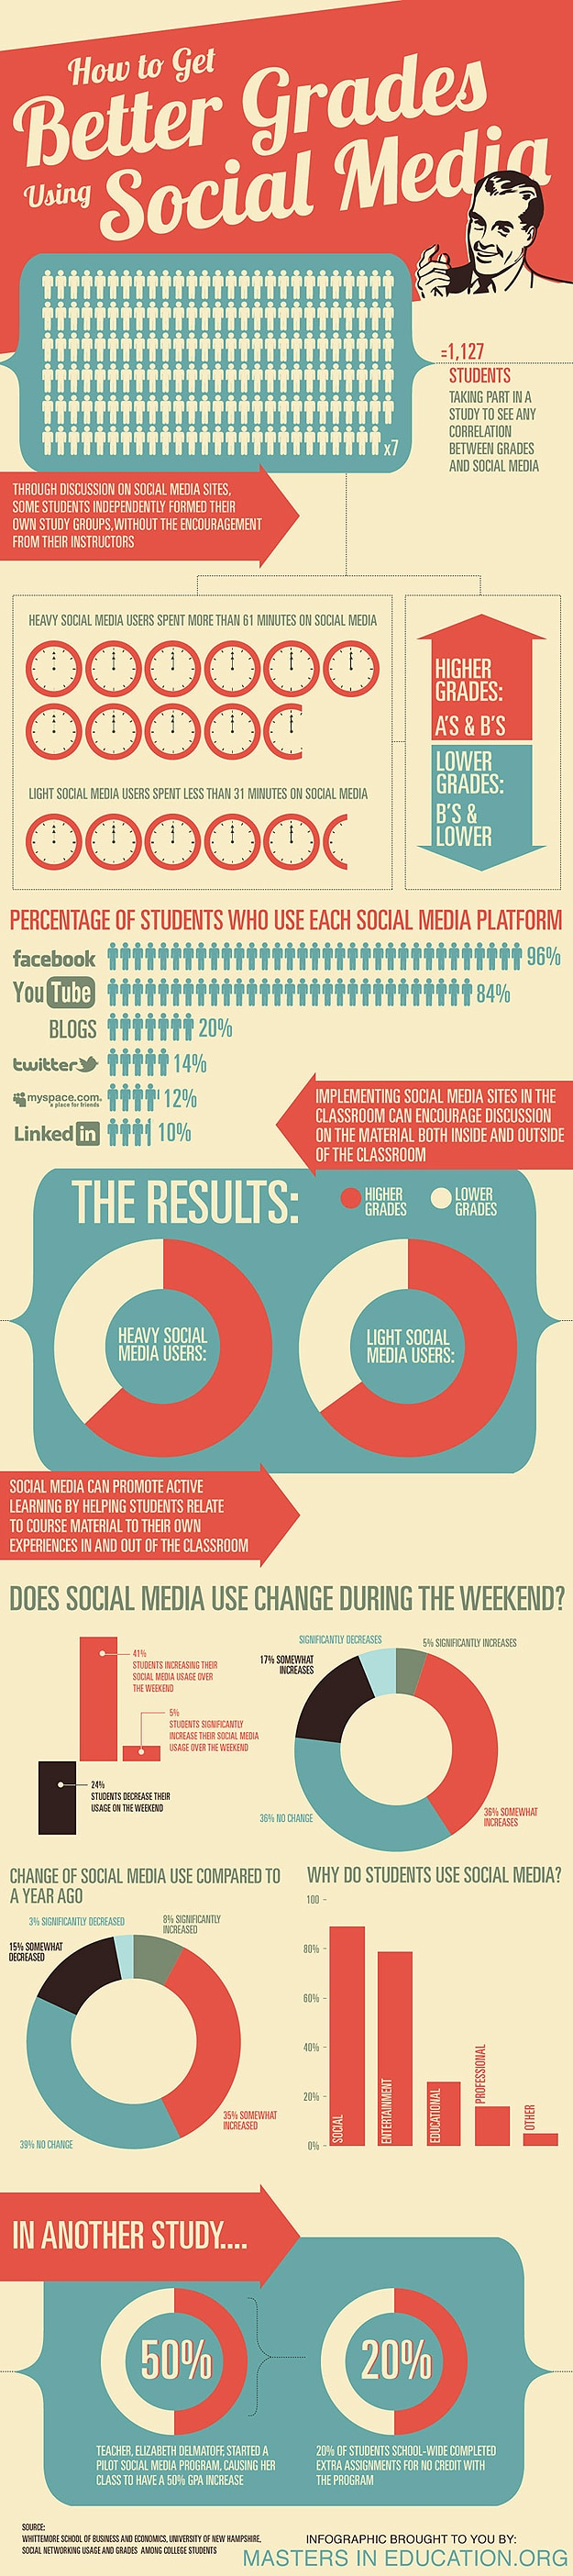 How Social Media Can Improve Student Grades [Infographic]